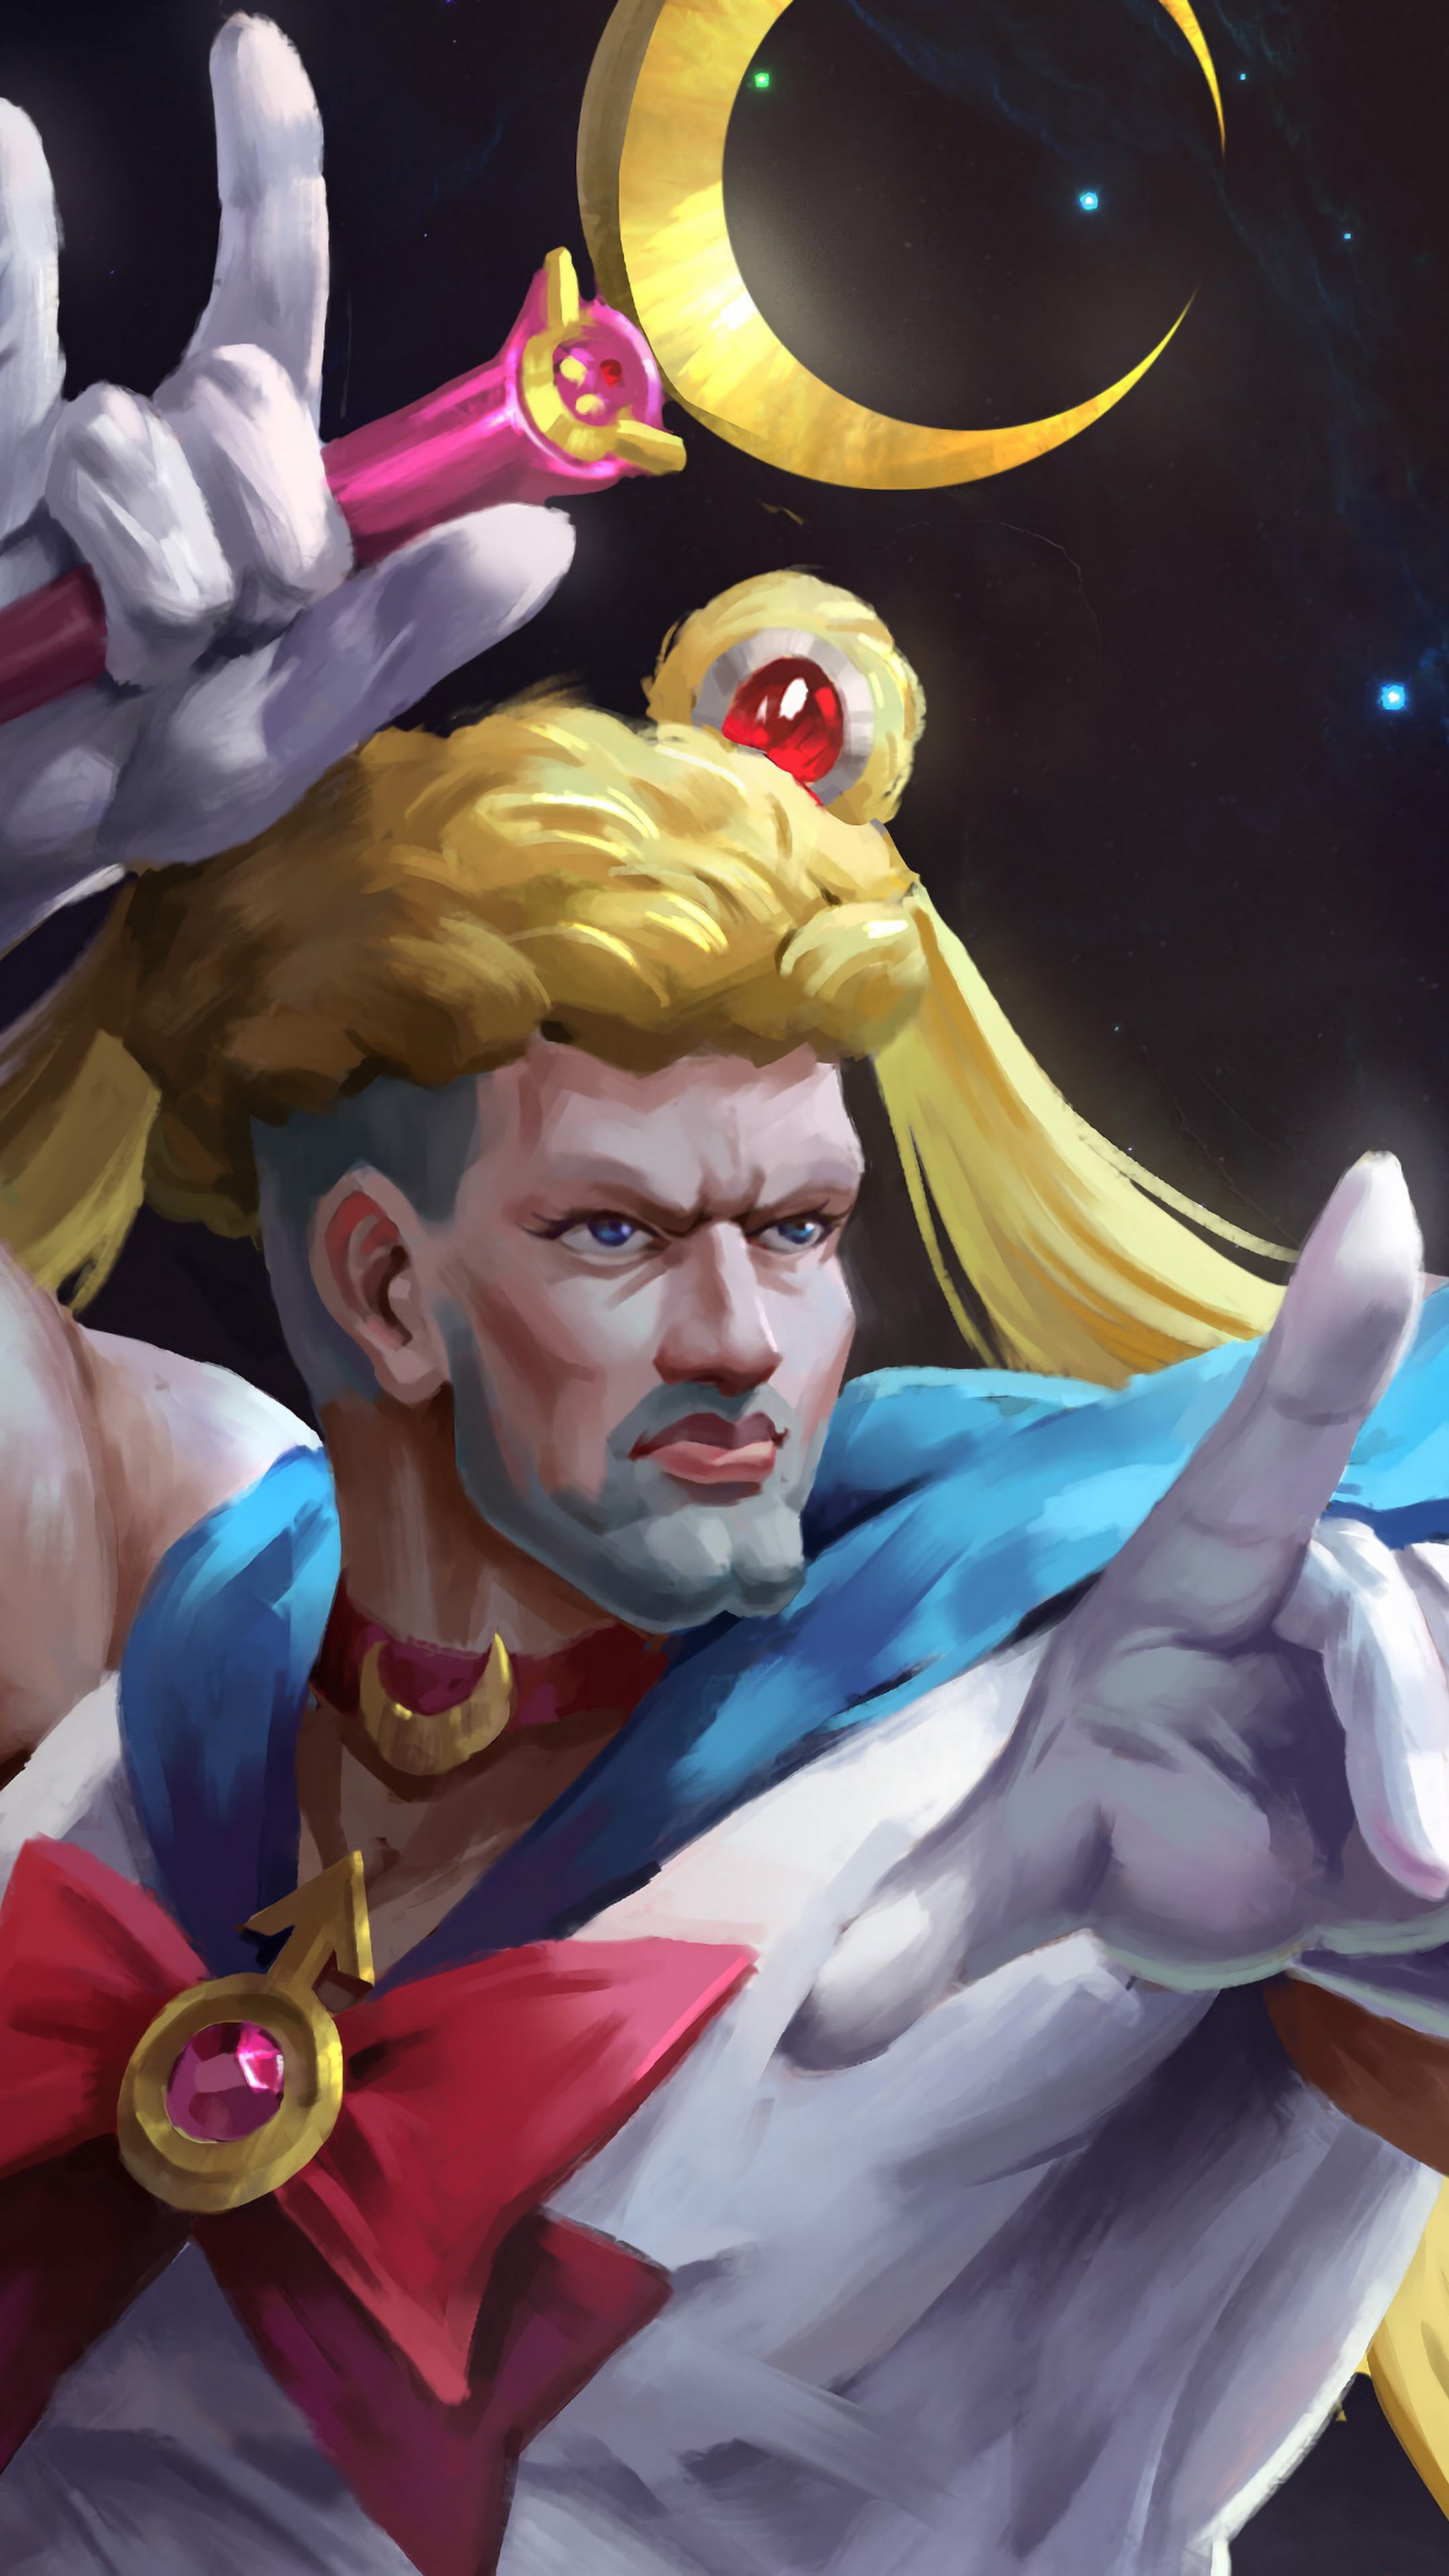 Puri Puri Prisoner One Punch Man 4k Wallpaper 59 Zerochan has 16 puri puri prisoner anime images, fanart, cosplay pictures, and many more in its gallery. puri puri prisoner one punch man 4k